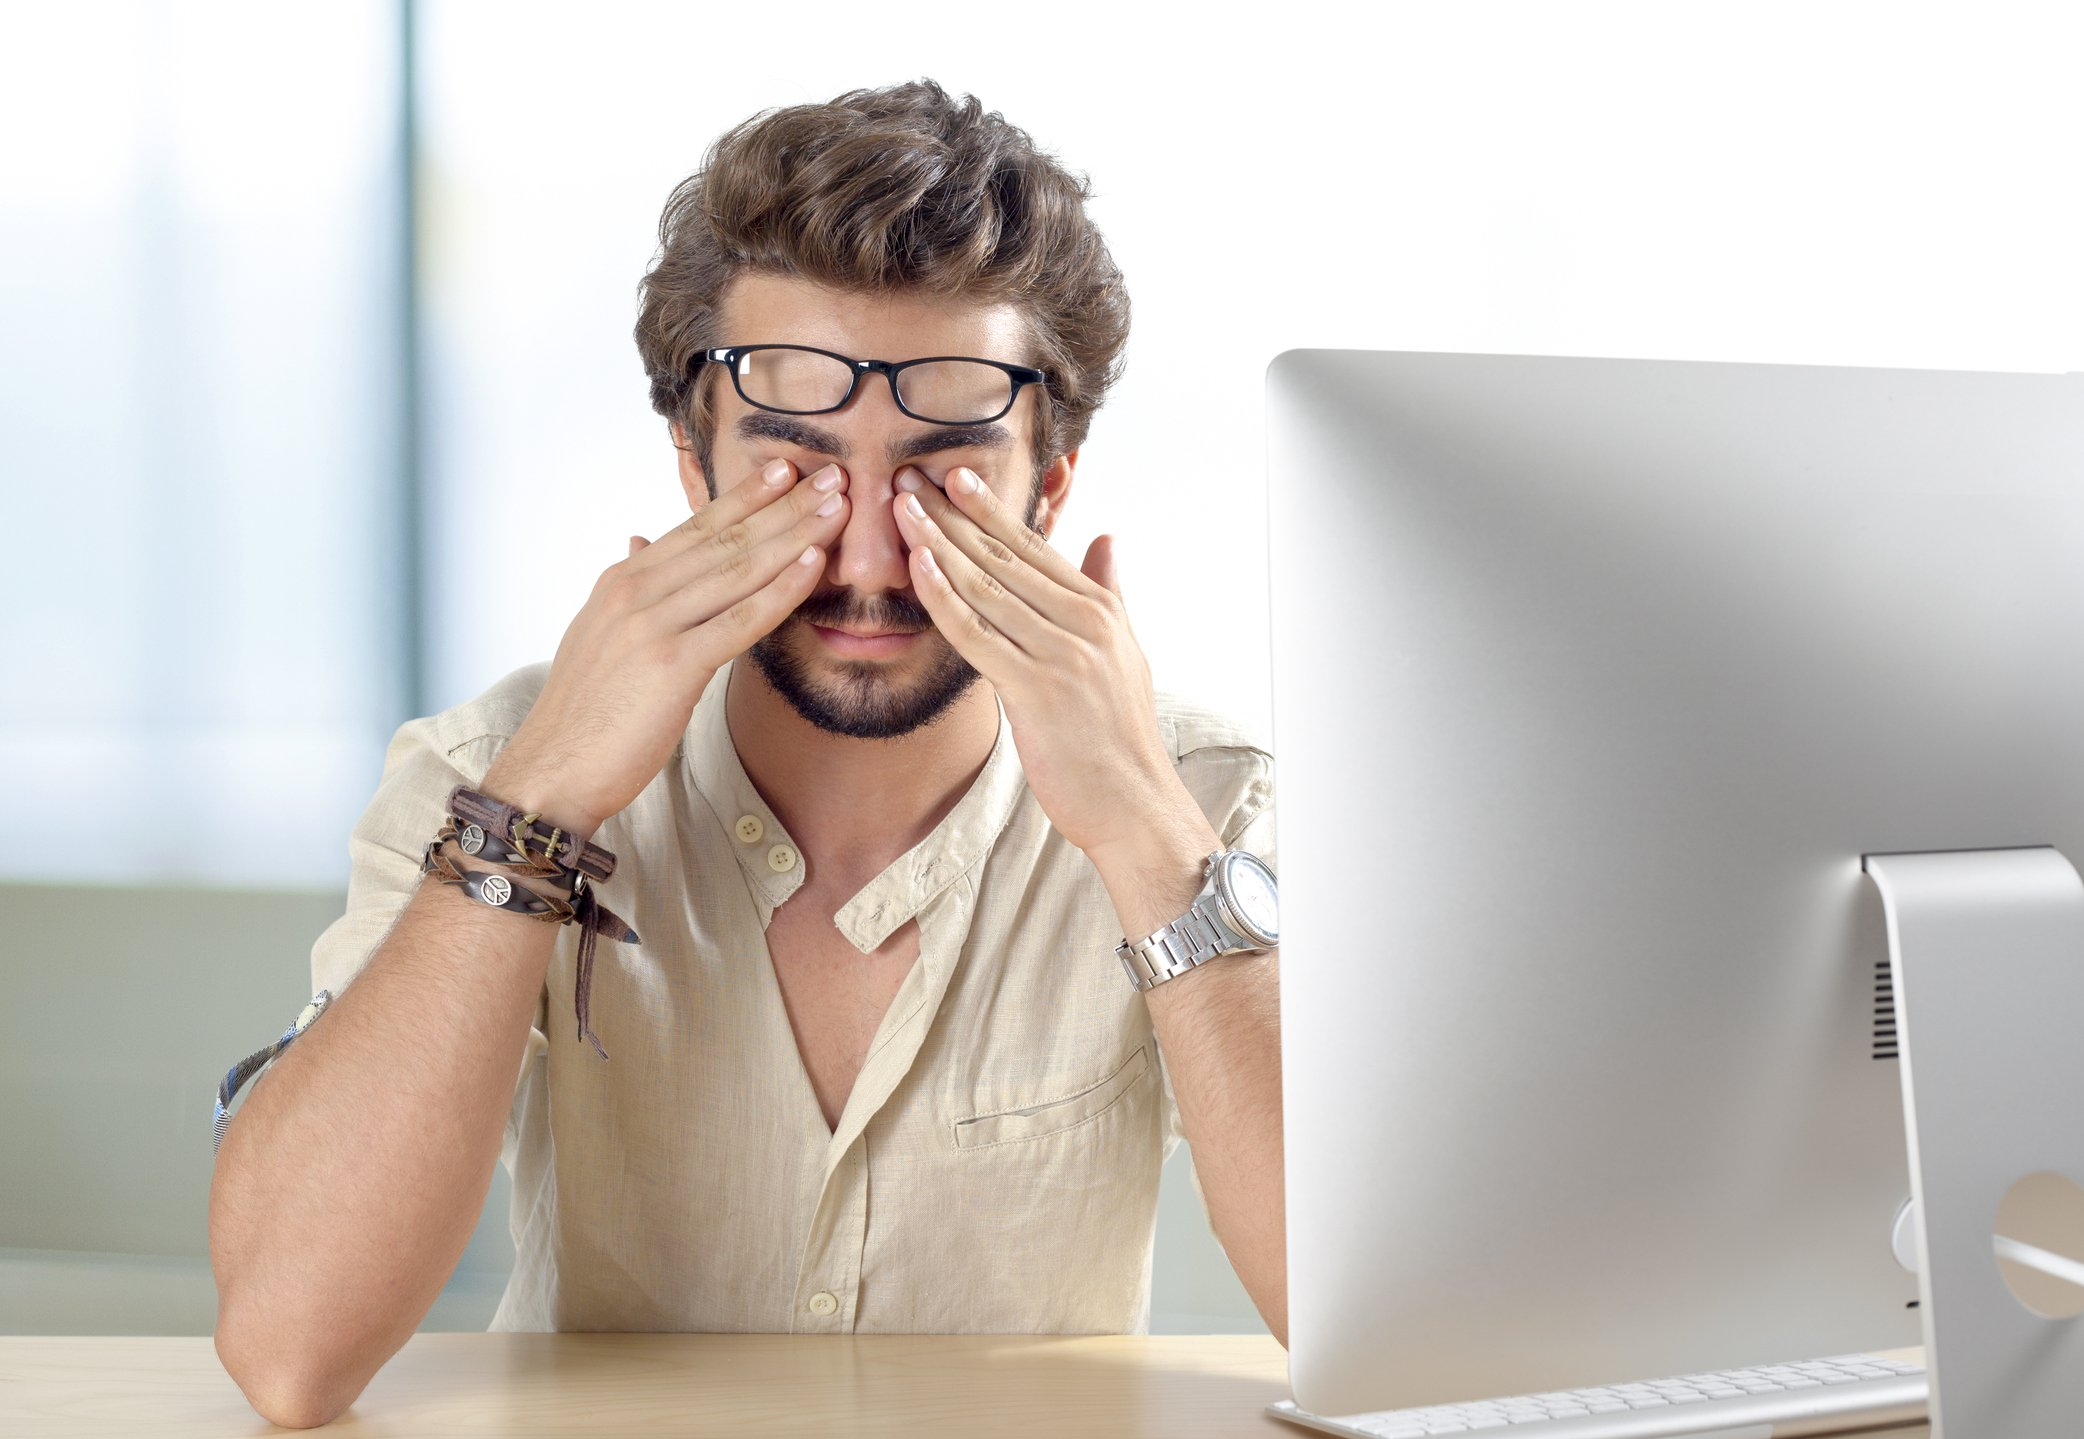 Why Do My Eyes Hurt While Wearing Glasses? | FramesDirect.com